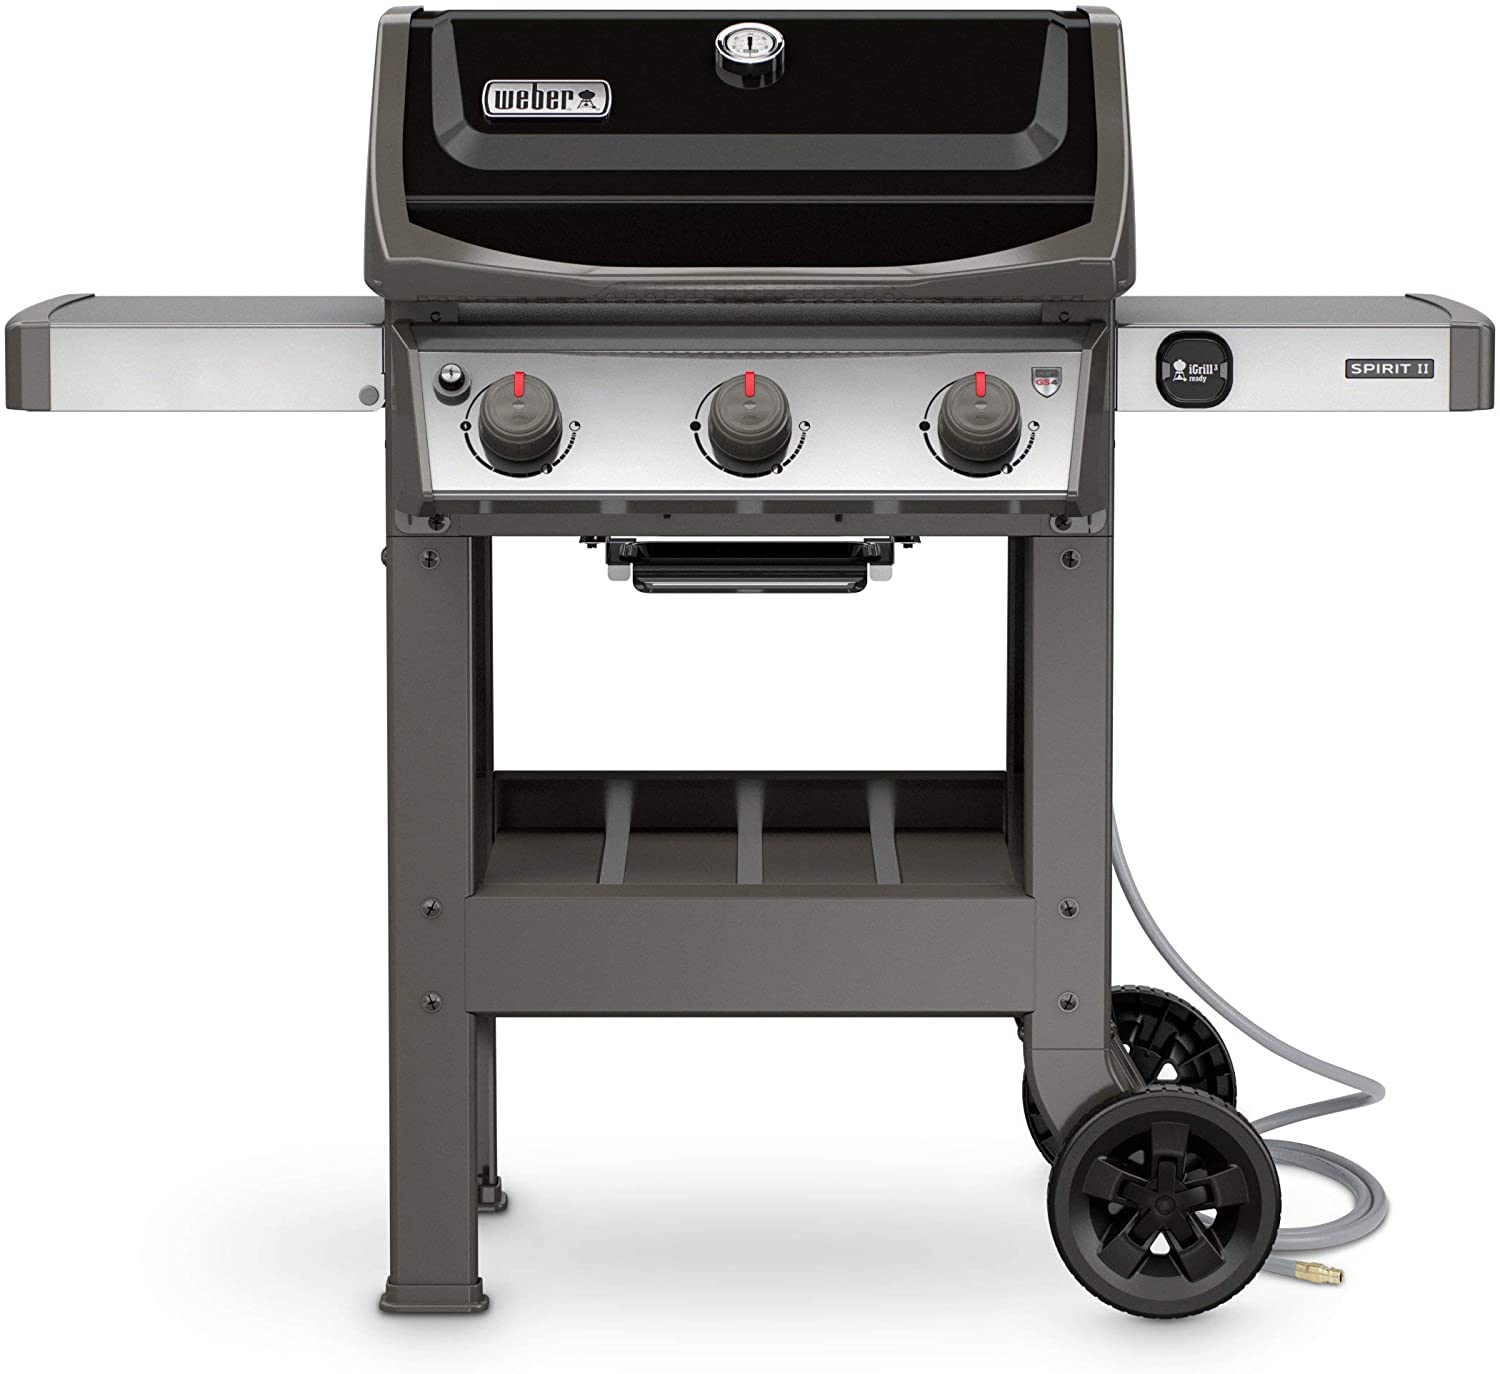 weber-49010001-spirit-ii-e-310-3-burner-natural-gas-grill-black